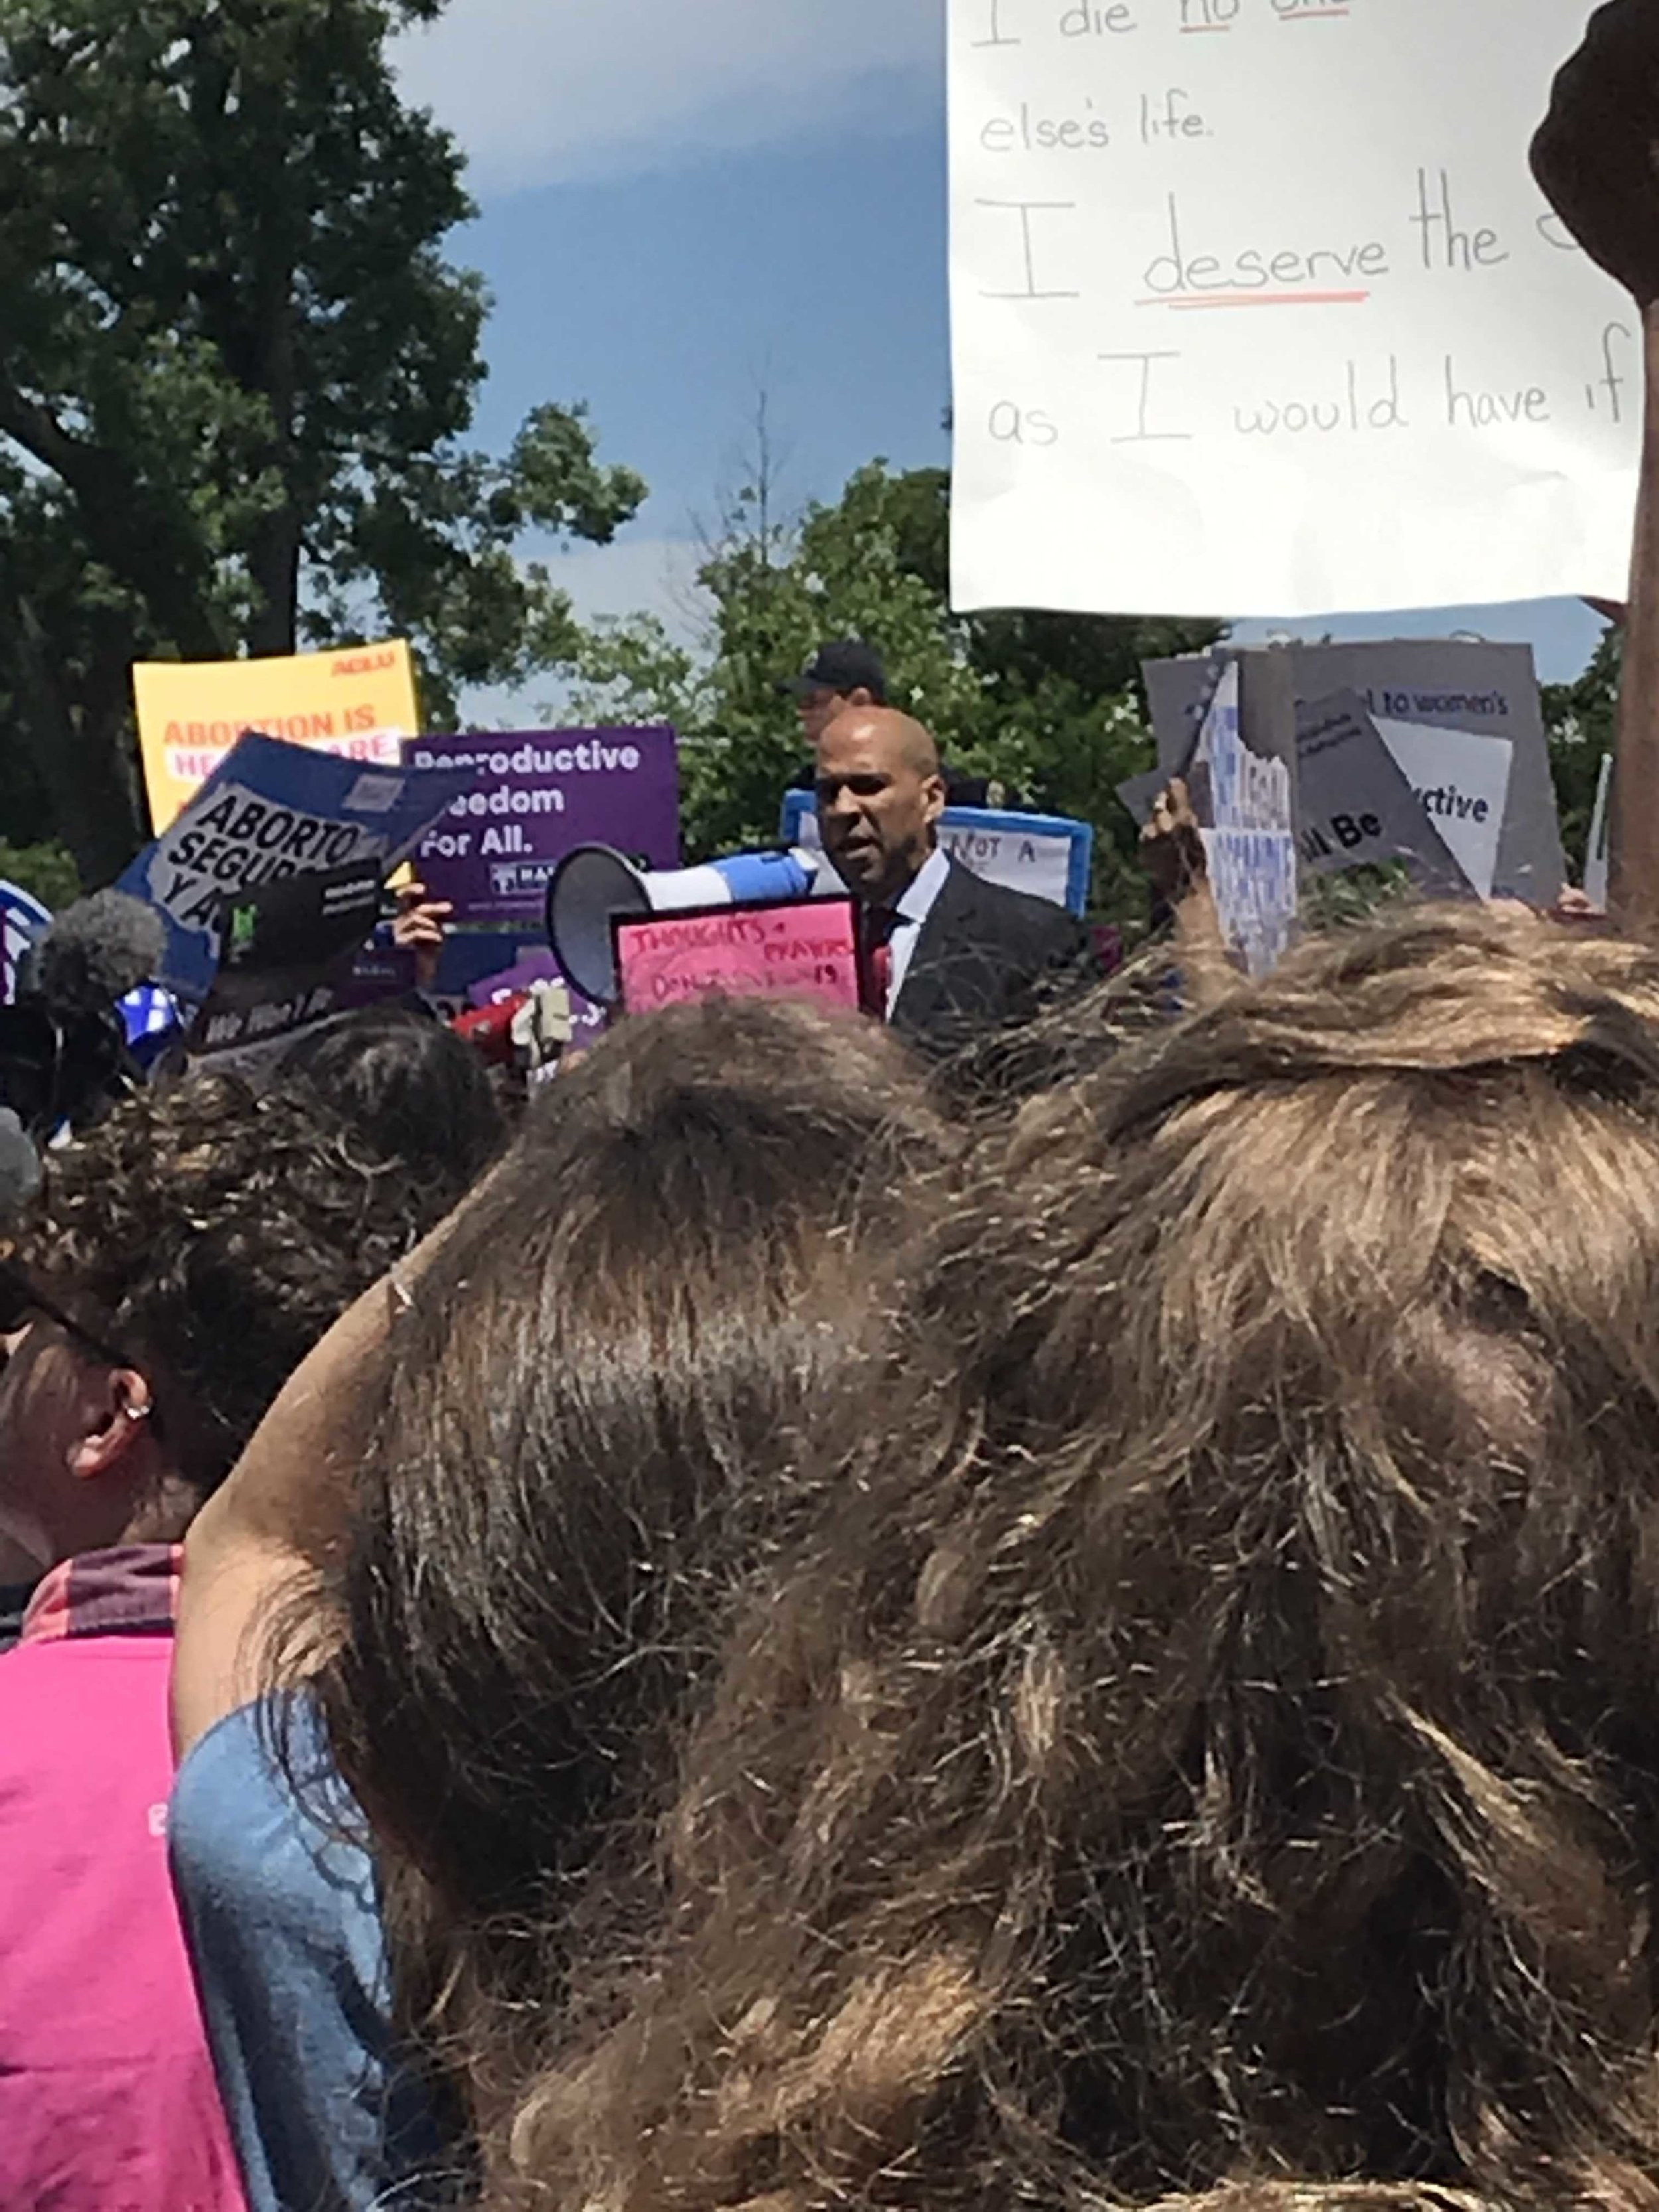 Cory Booker, Chuck Schumer, Pete Buttigieg, Kirsten Gillibrand, and many other Dems spoke at the abortion rally. (May 2019)